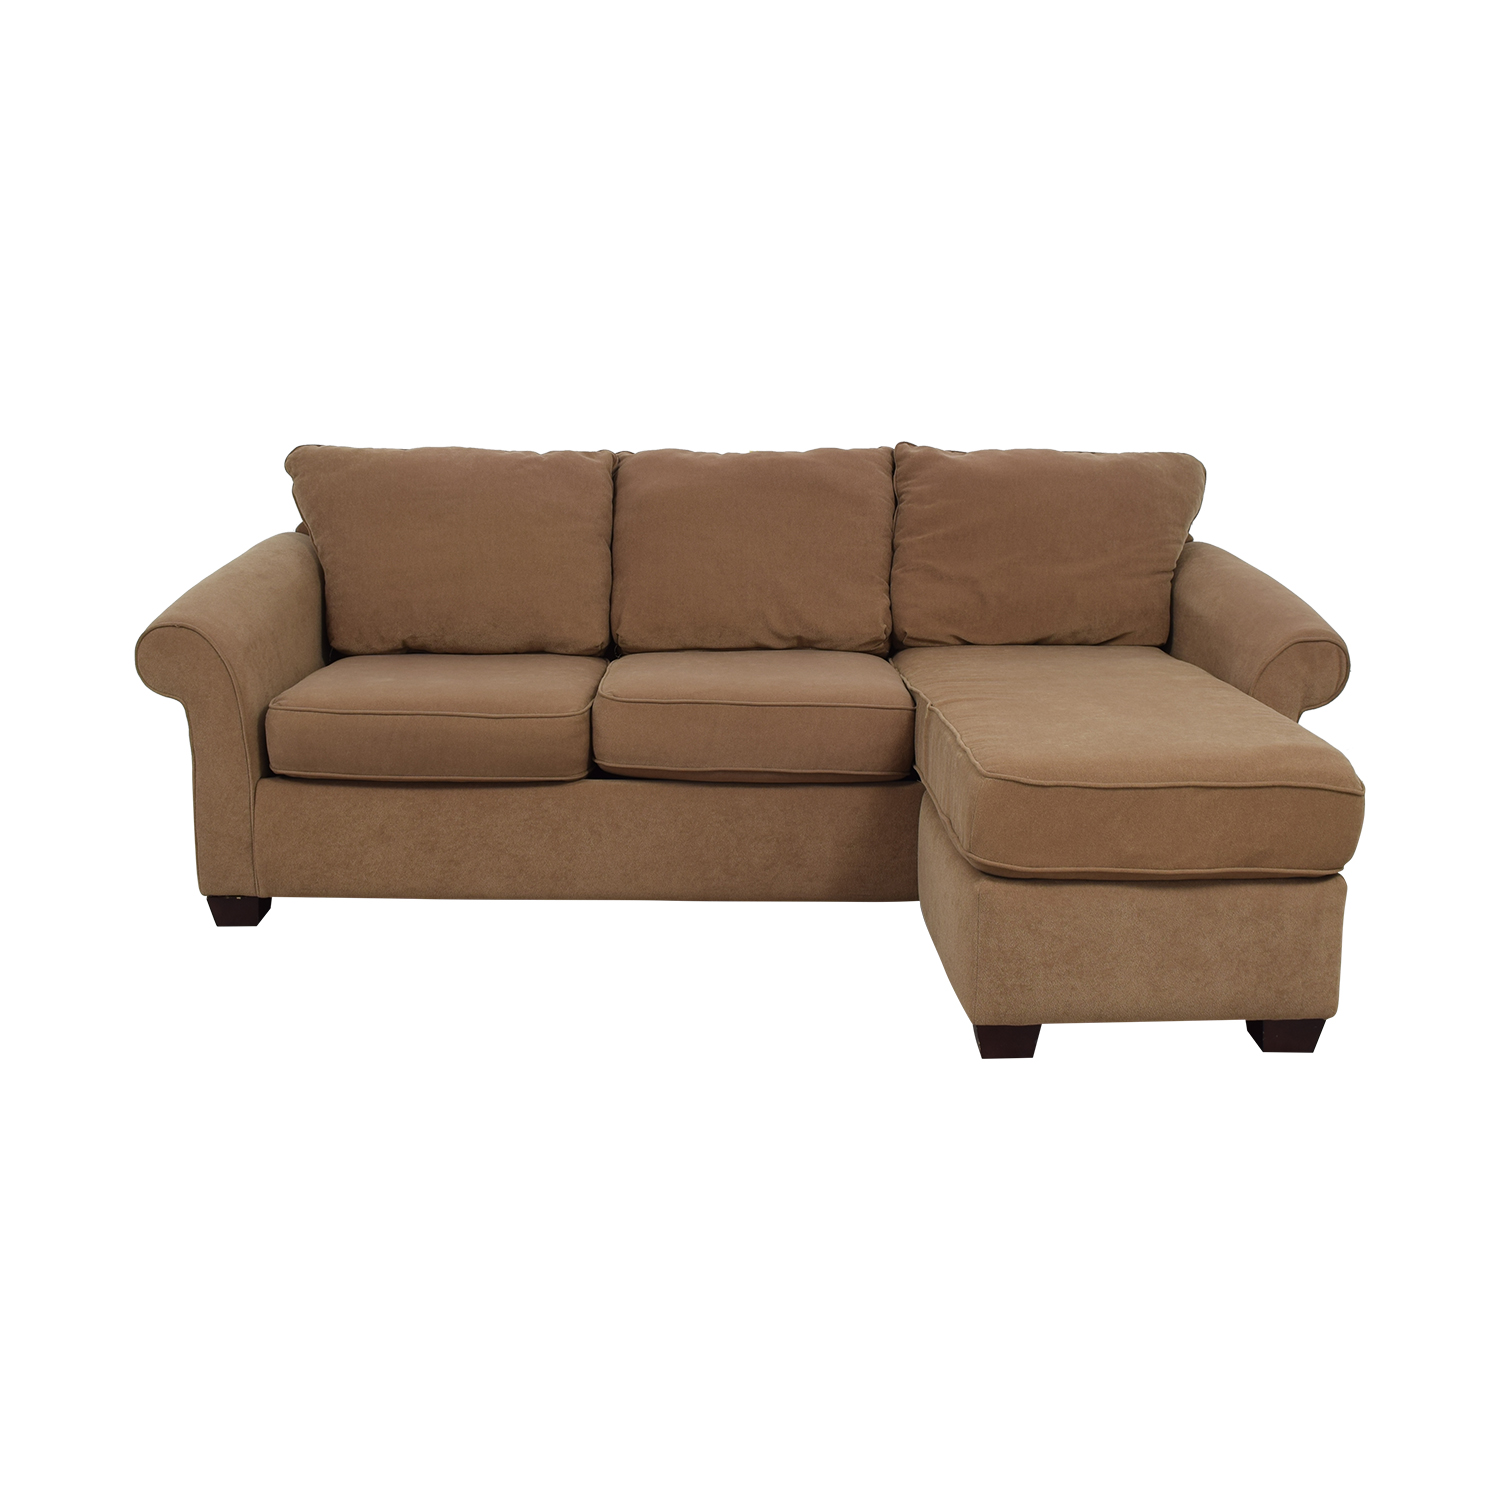 Costco Costco Brown Chaise Sectional